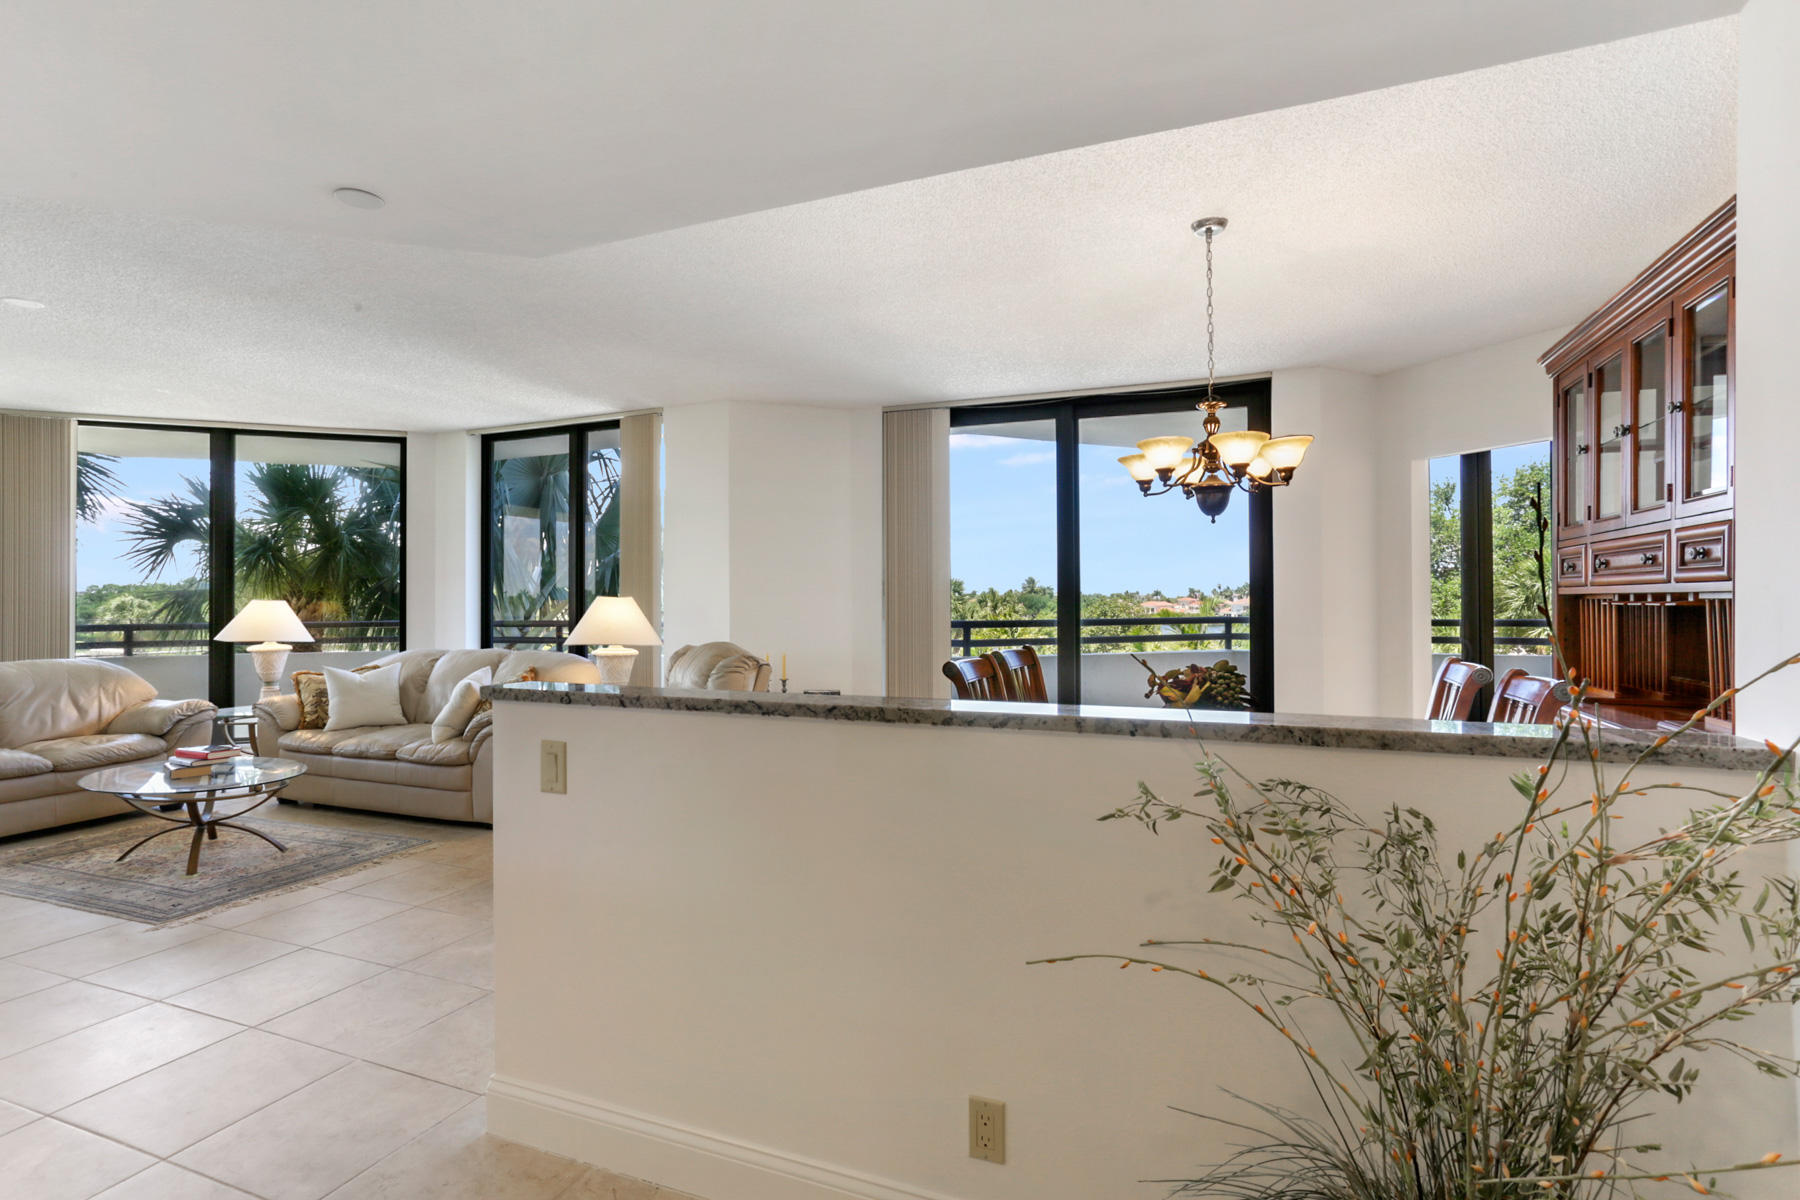 New Home for sale at 3322 Casseekey Island Road in Jupiter